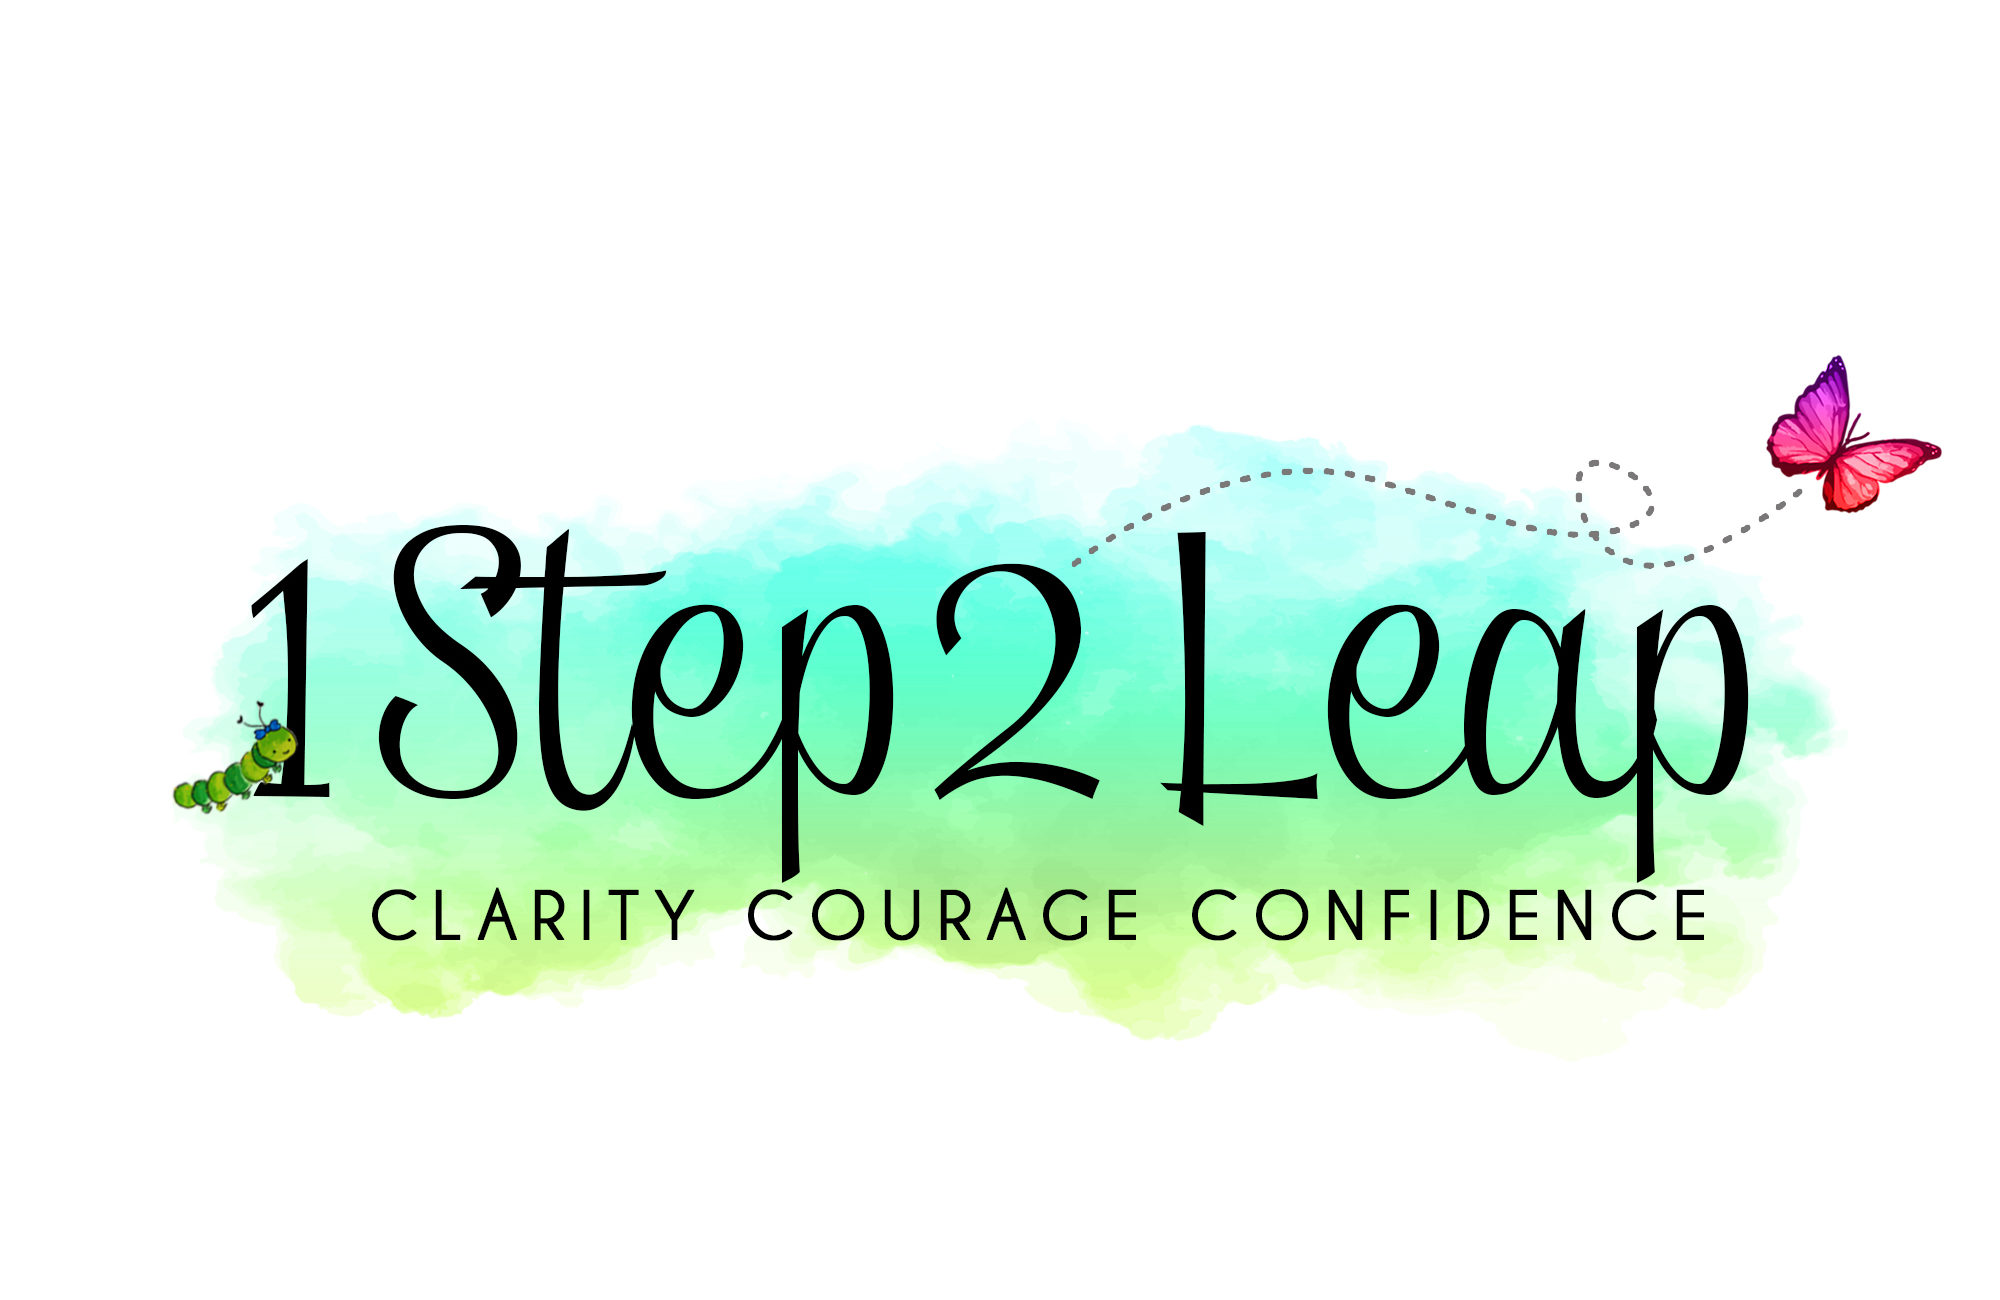 Clarity Courage Confidence